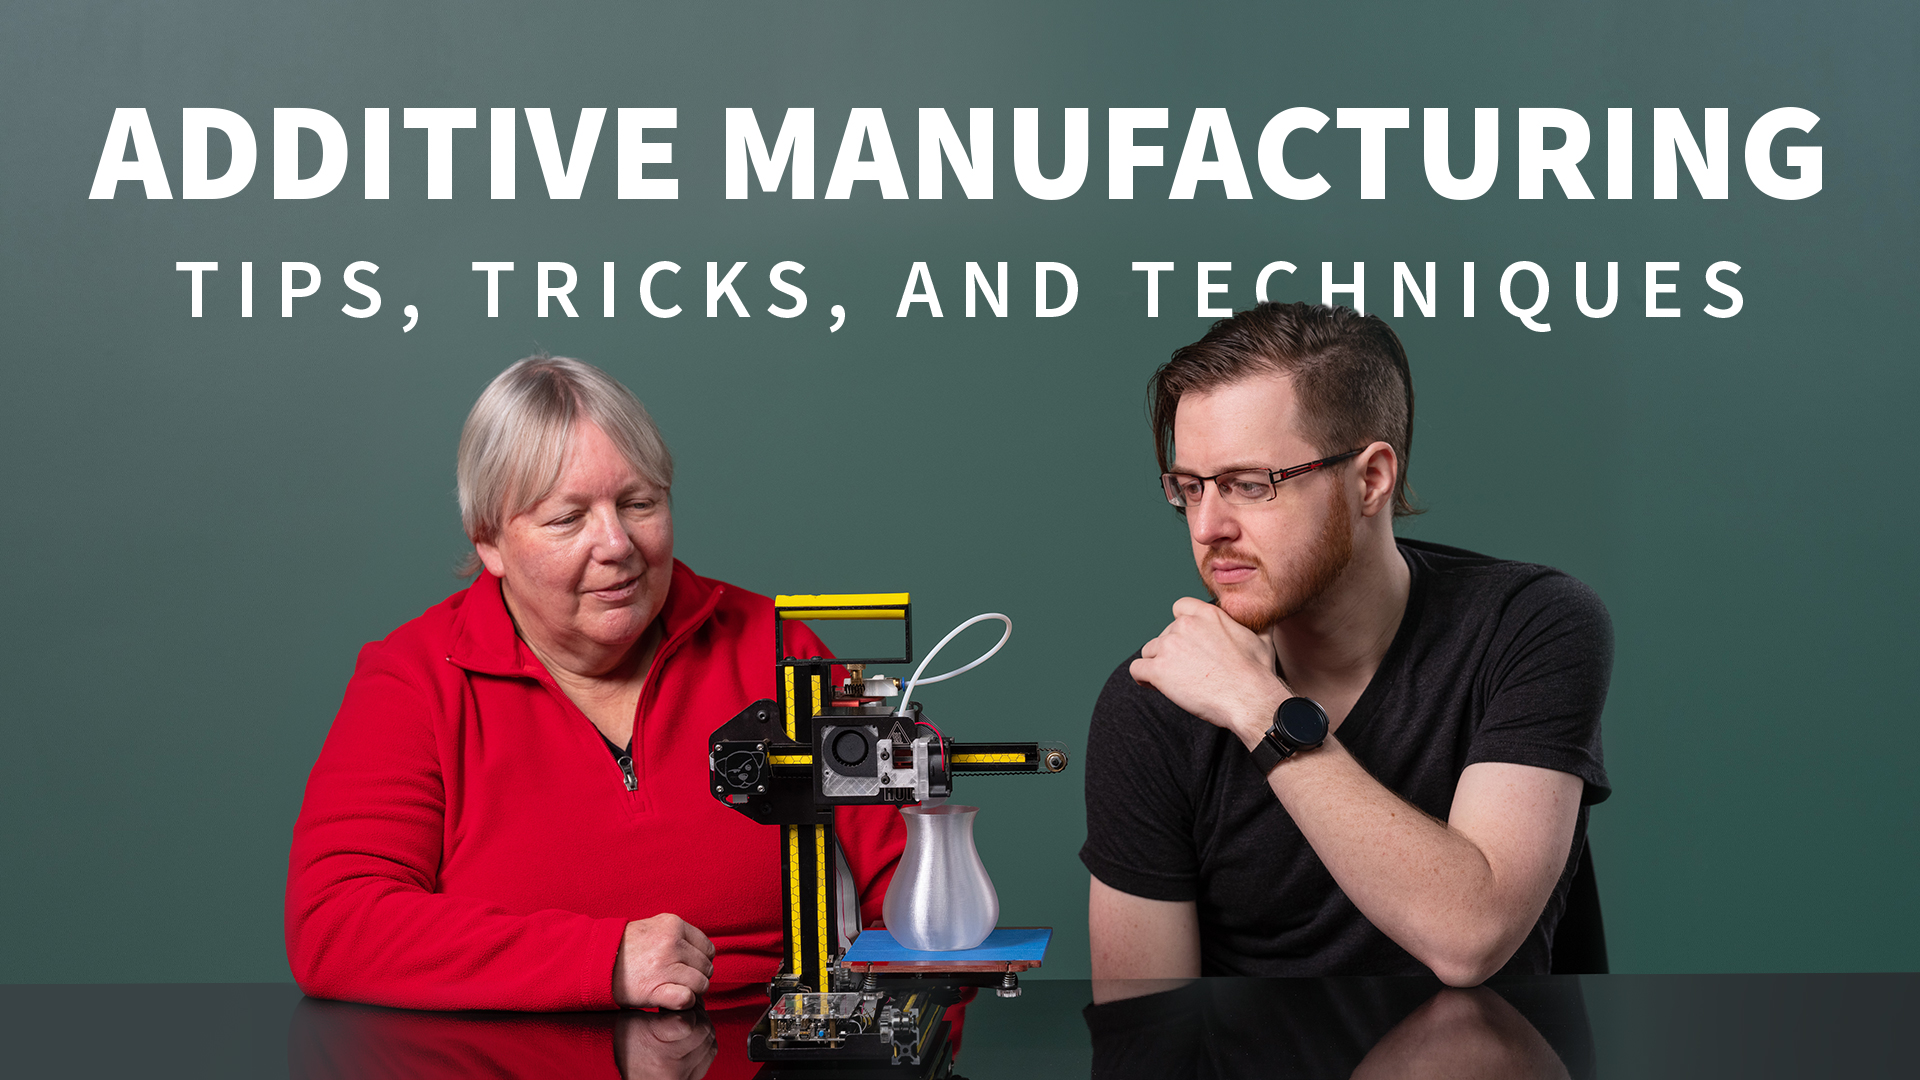 Additive Manufacturing: Tips, Tricks, and Techniques